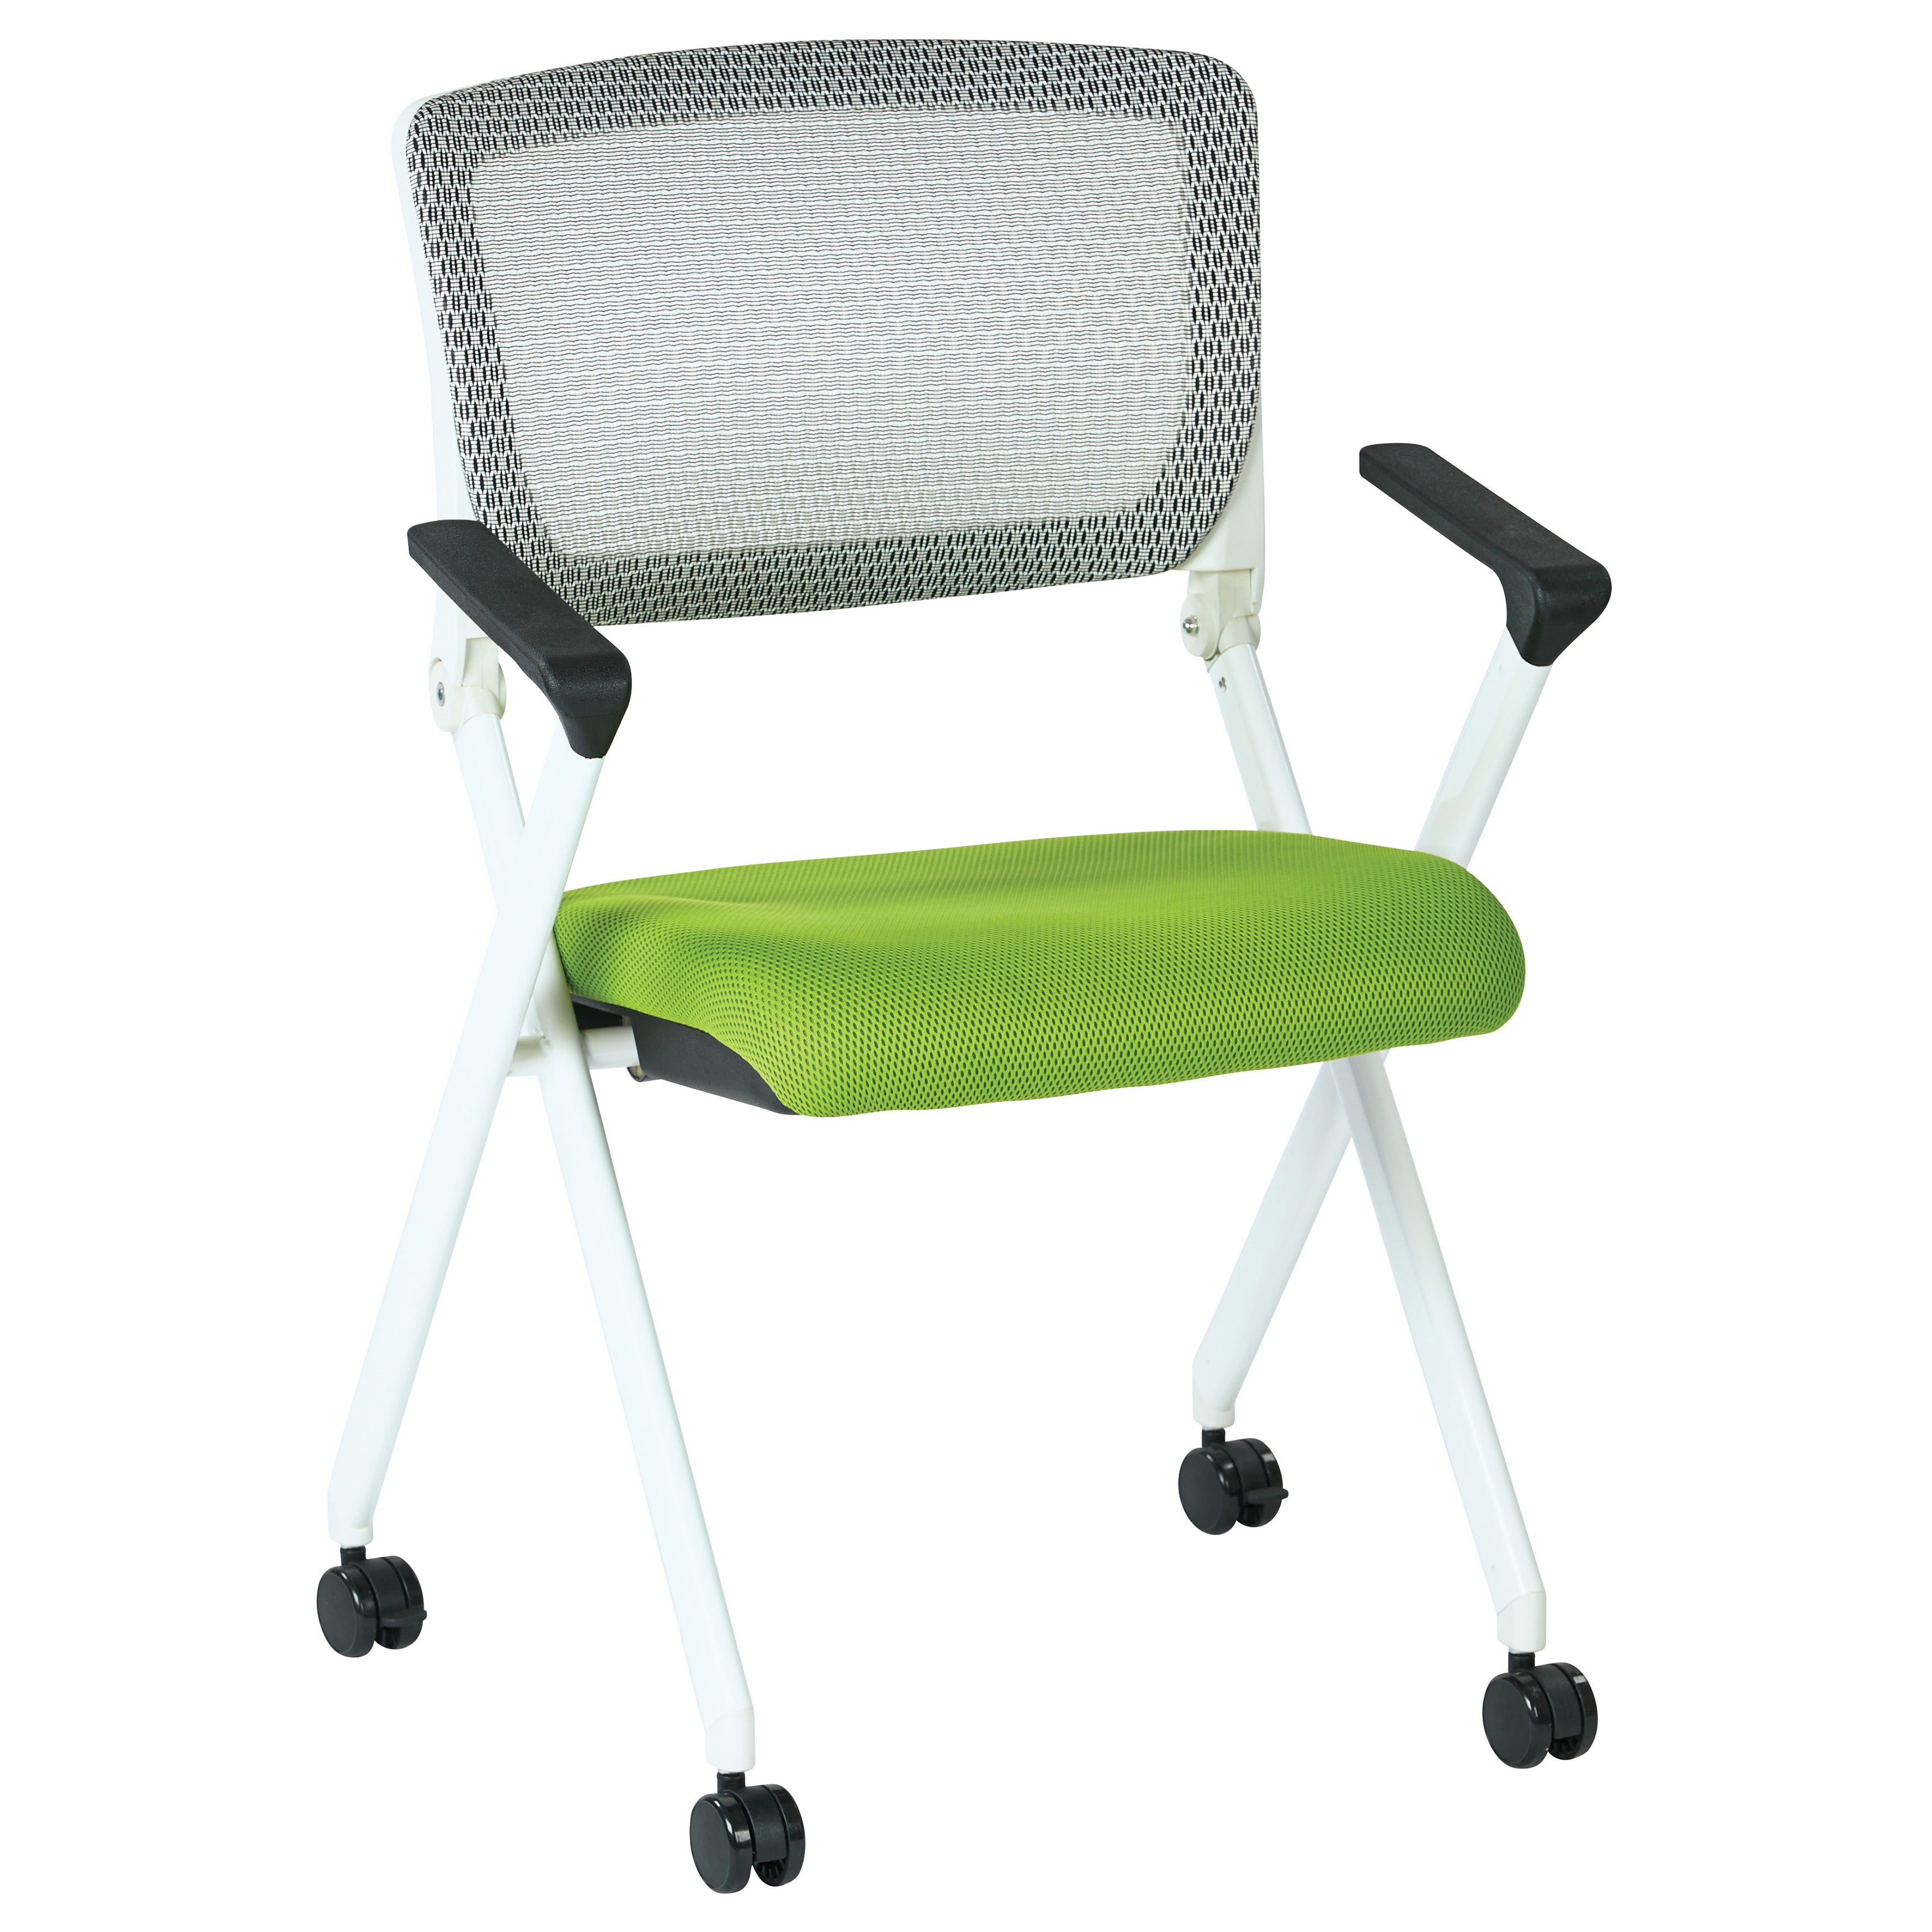 Flex one folding chair white